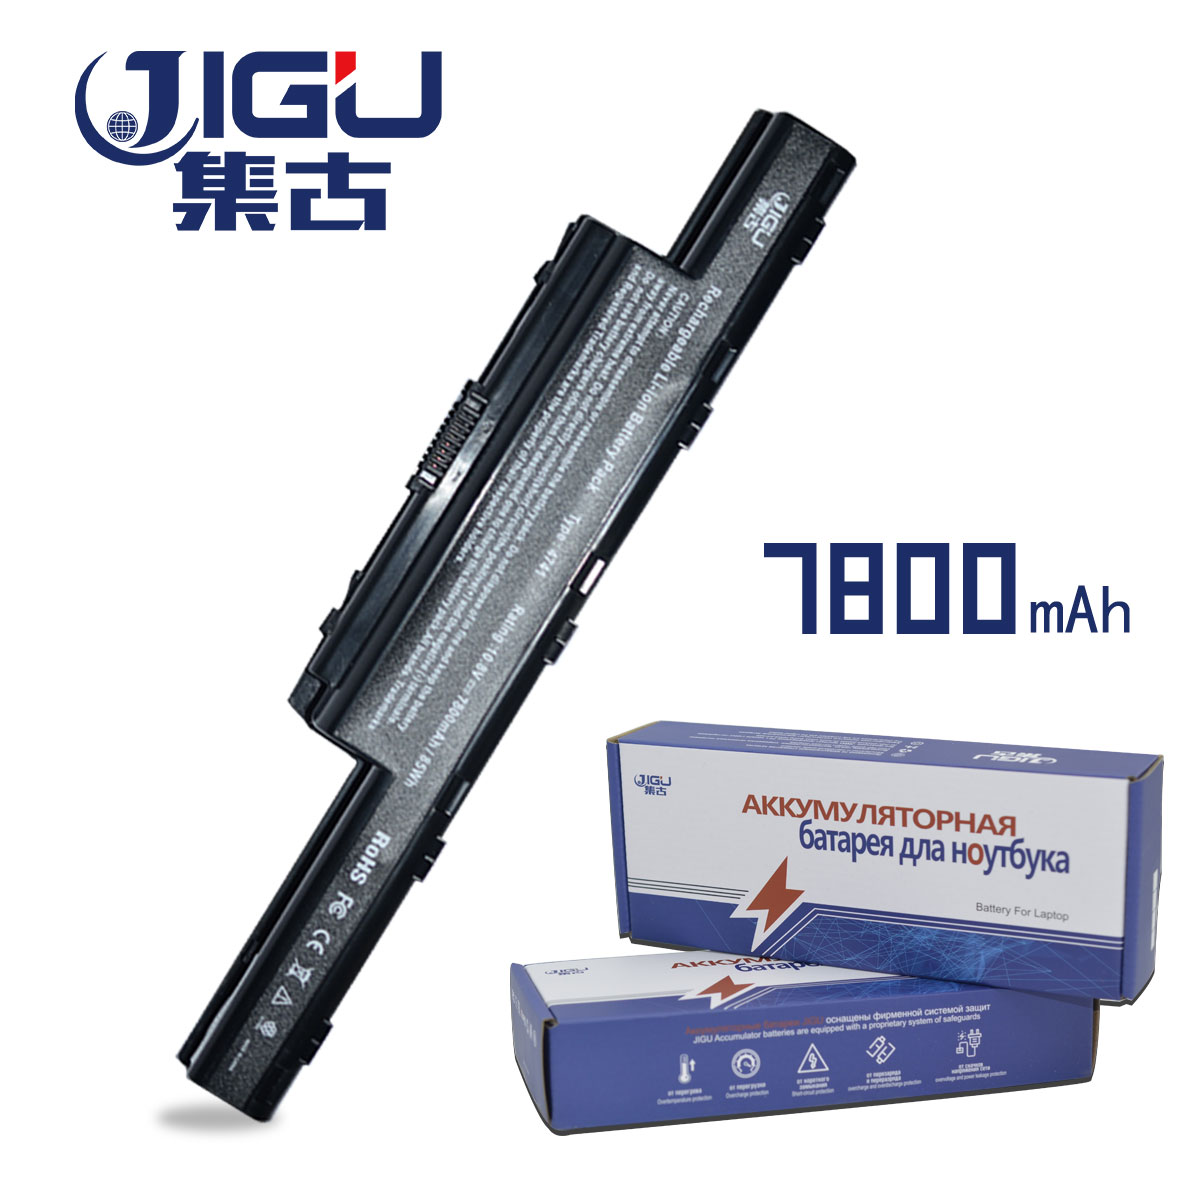 JIGU 7750g NEW Laptop Battery For Acer Aspire V3 V3-471G V3-551G V3-571G V3-771G E1 E1-421 E1-431 E1-471 E1-531 E1-571 Series пилинг elizavecca milky piggy real whitening time secret peeling cream объем 100 г